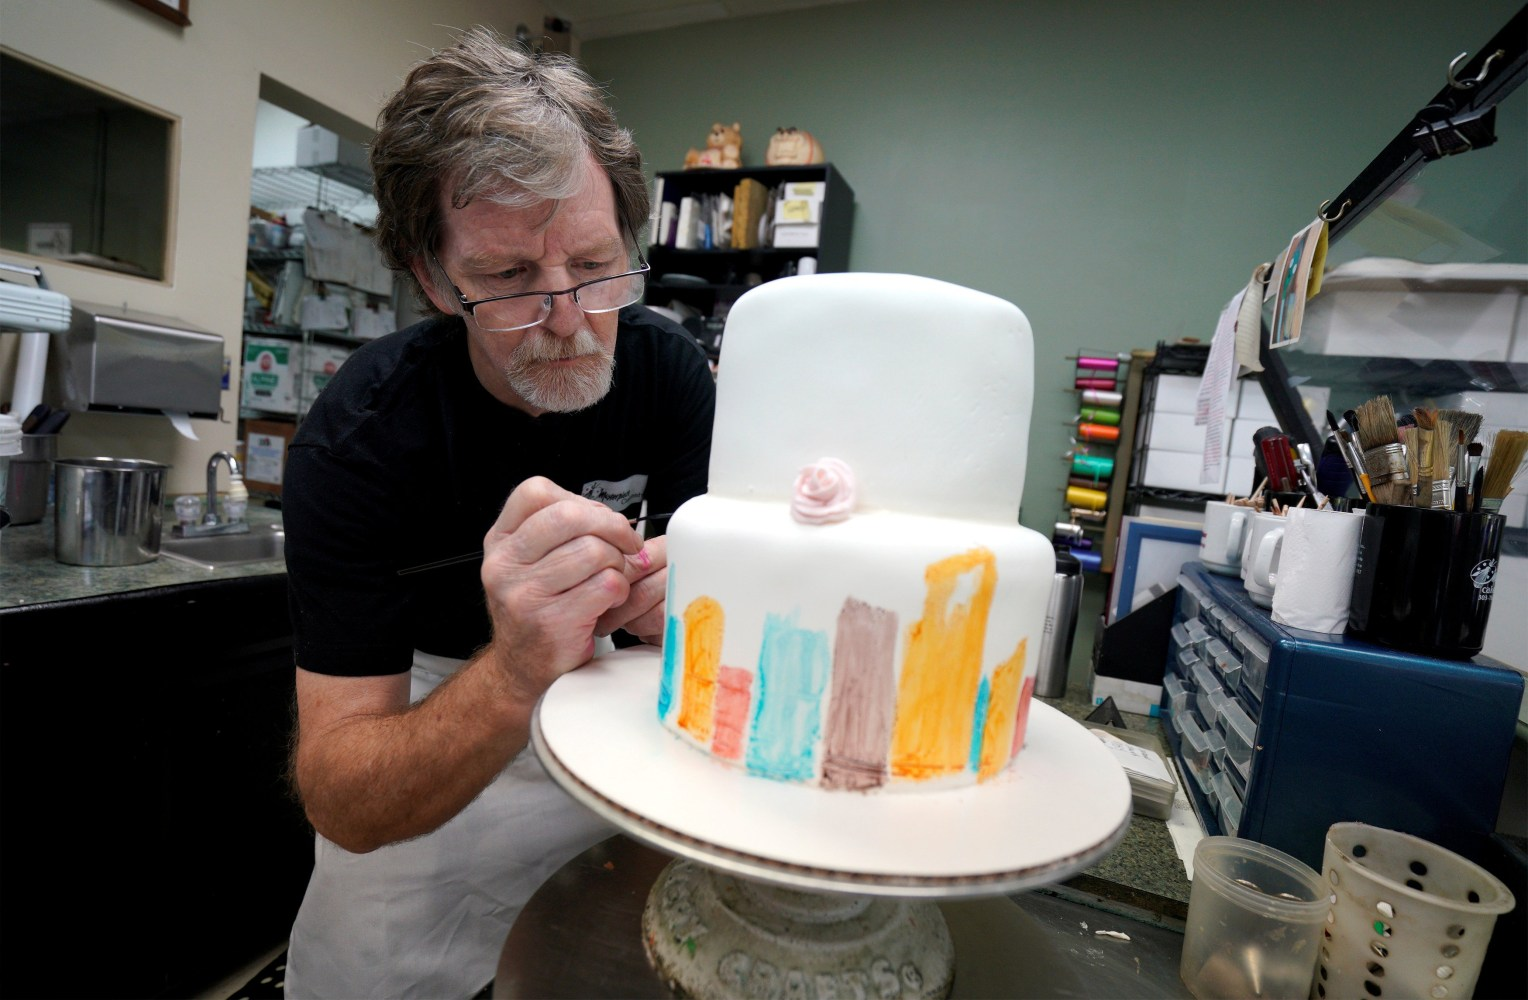 Aclu Gay Wedding Cake Case